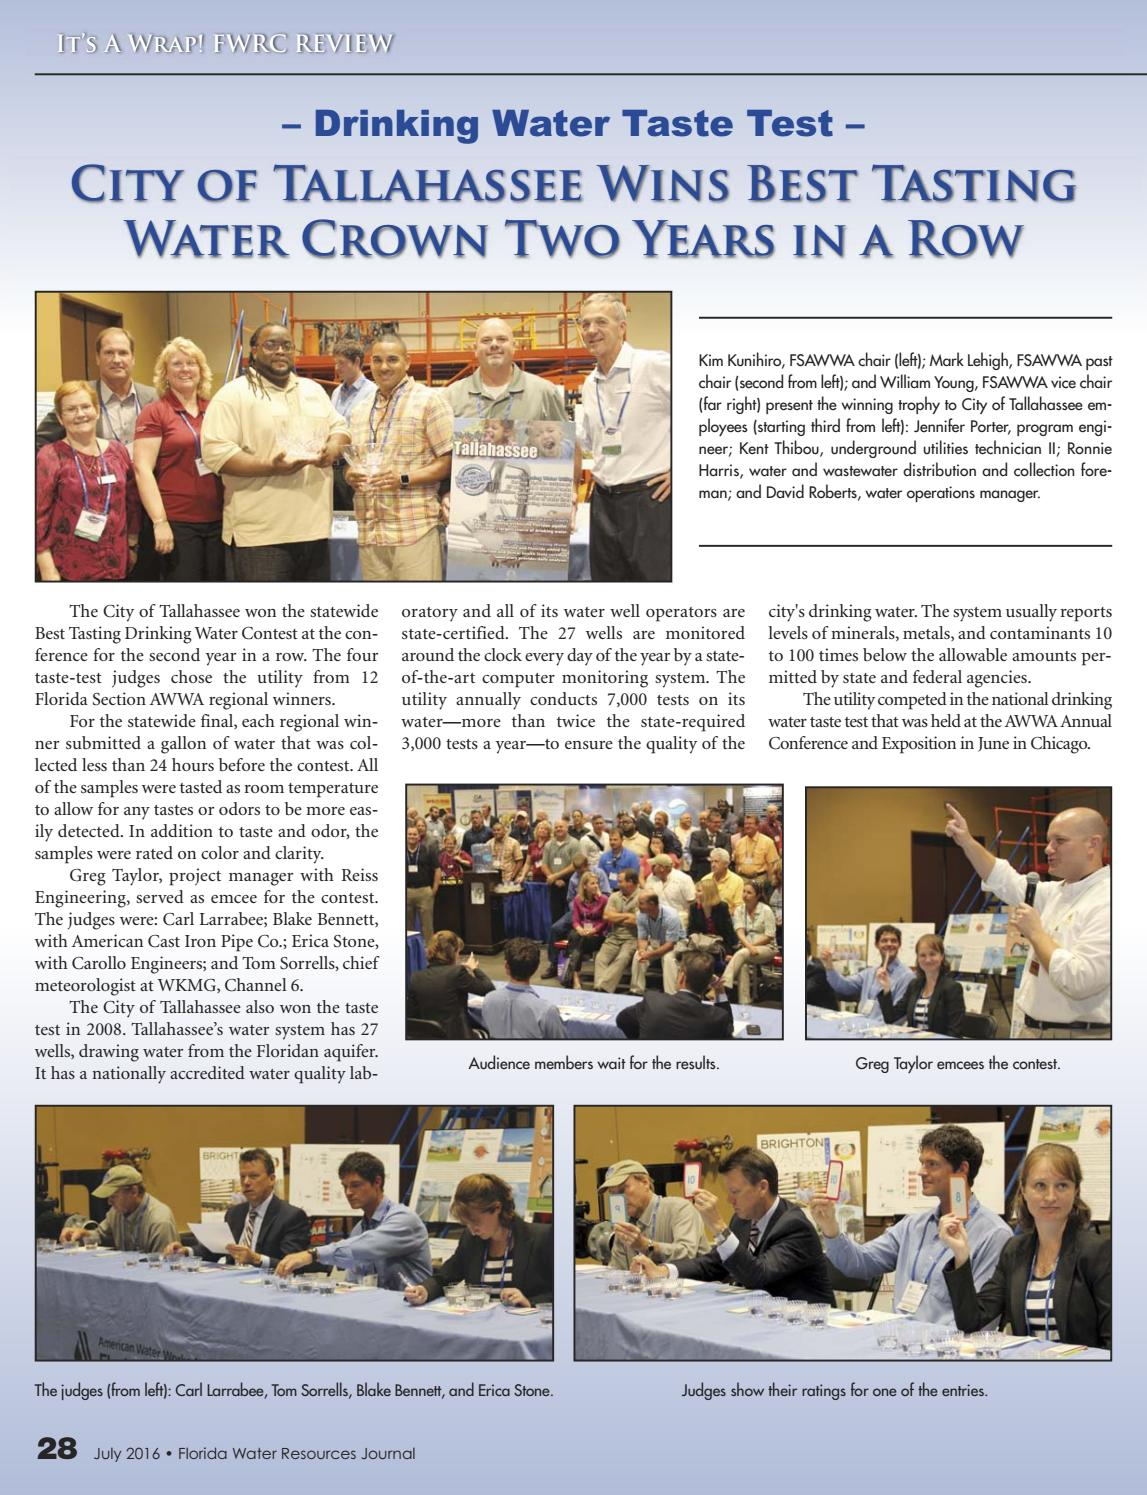 City Of Tallahassee Utility Florida Water Resources Journal July 2016 By Florida Water